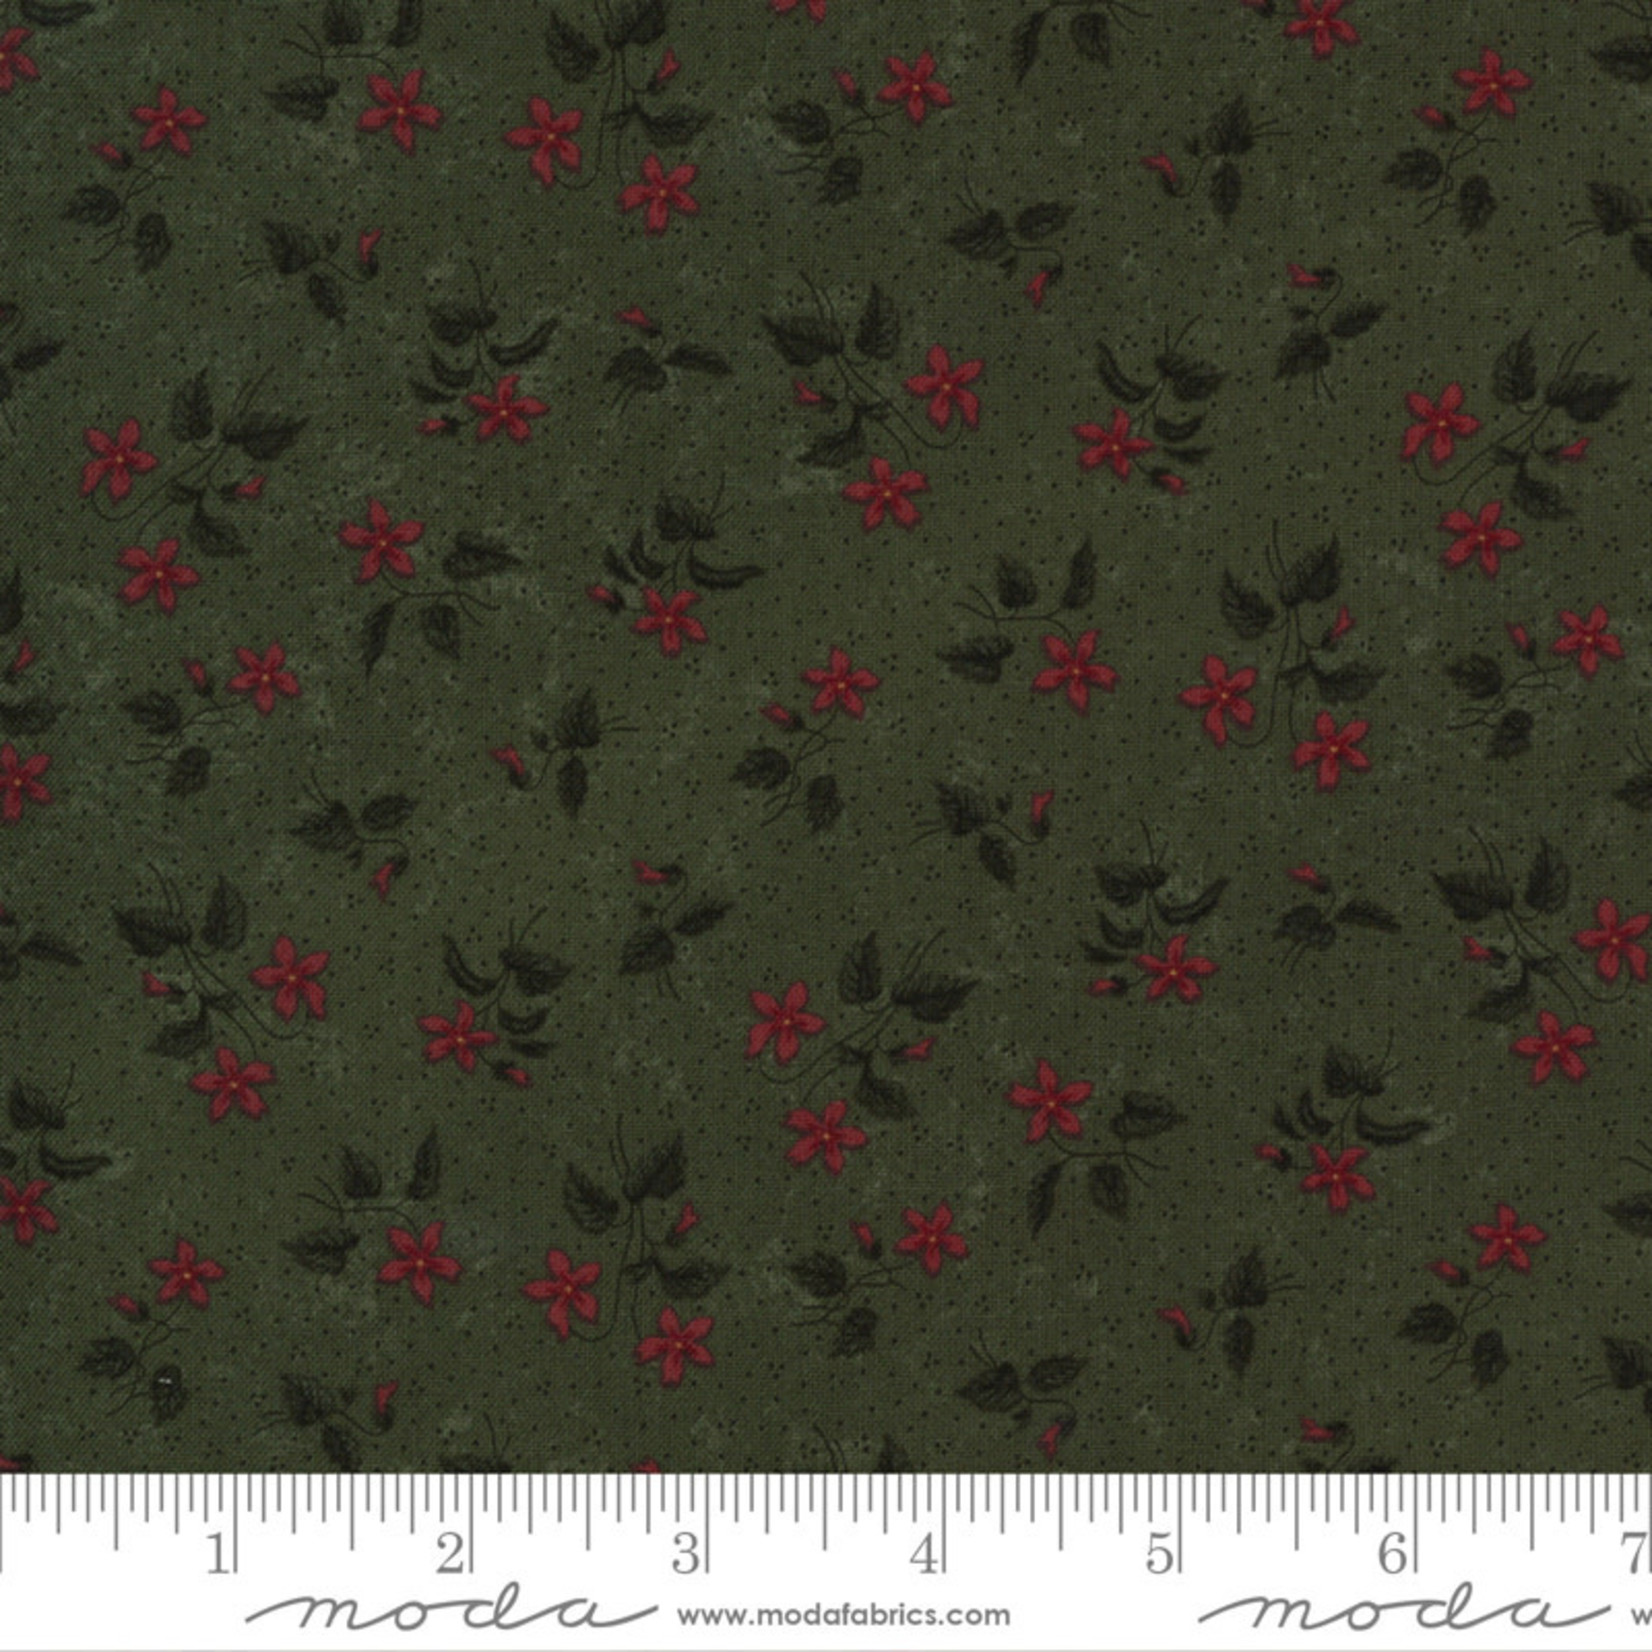 Kansas Troubles Quilters Prairie Dreams, Blossoms Florals, Green 9652 15 $0.20 per cm or $20/m